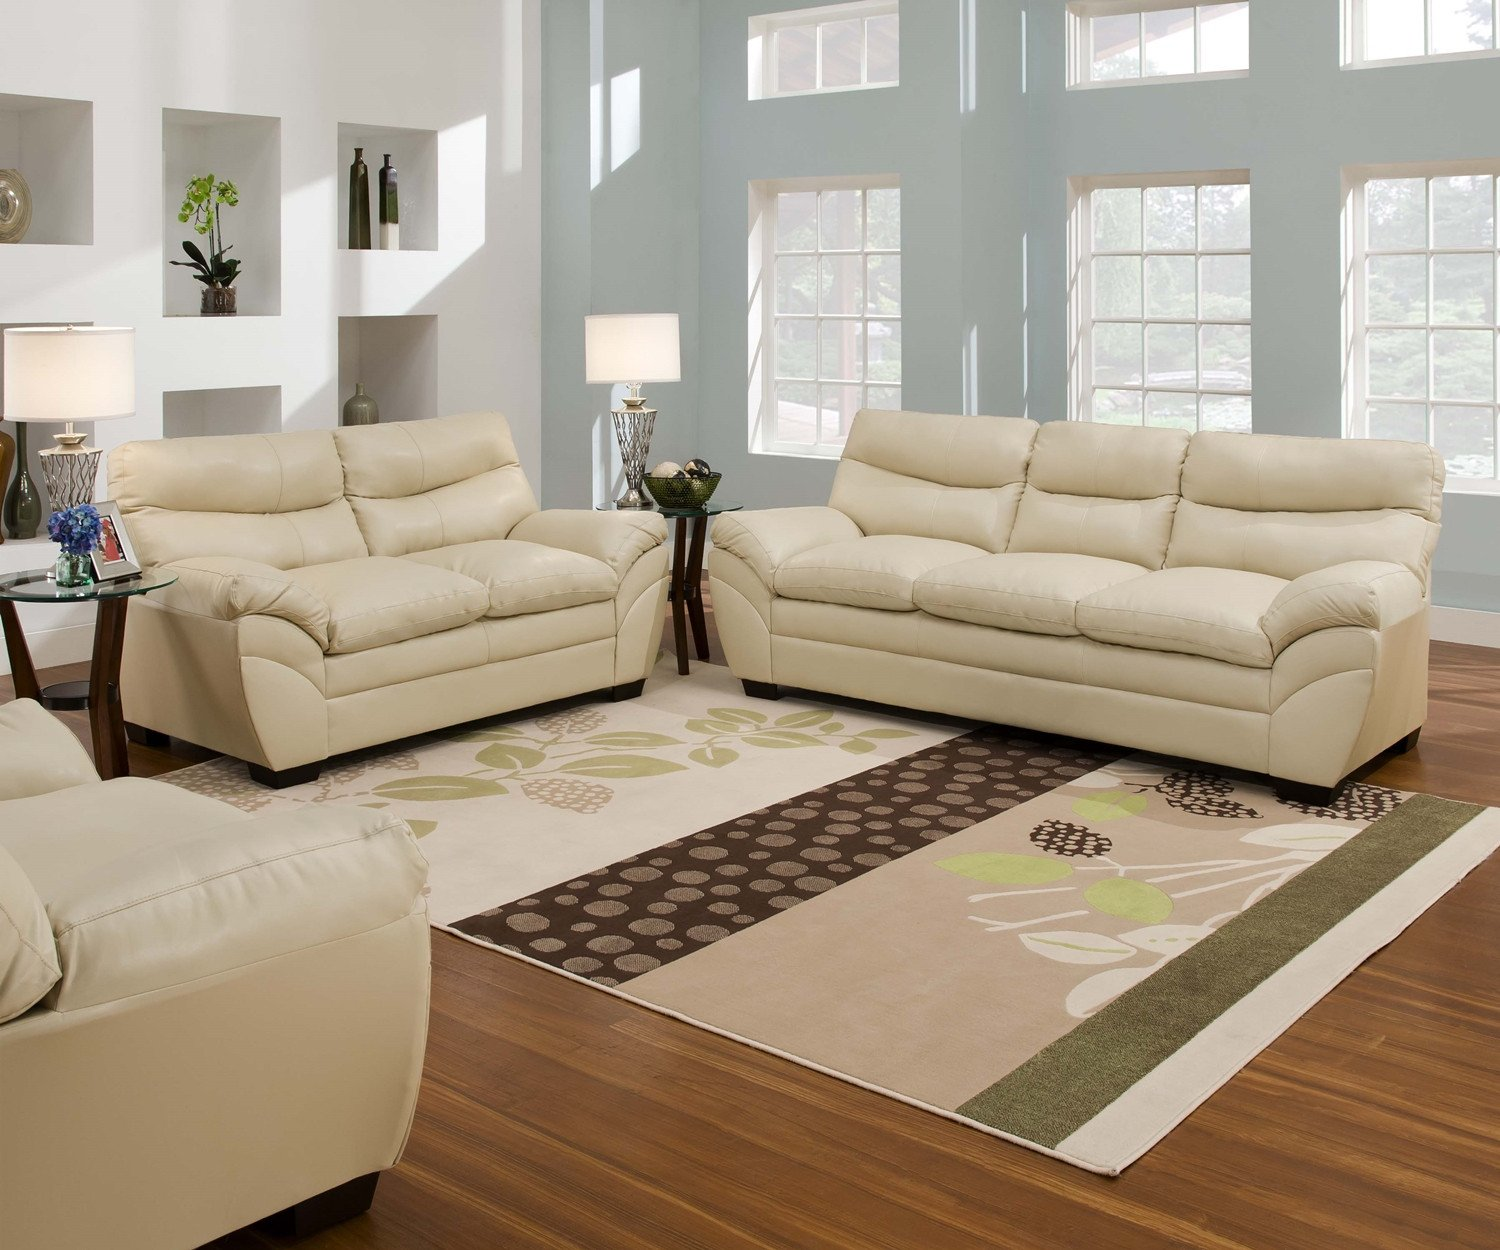 Casual Contemporary Living Room Lovely Casual Contemporary Cream Bonded Leather sofa Set Living Room Furniture